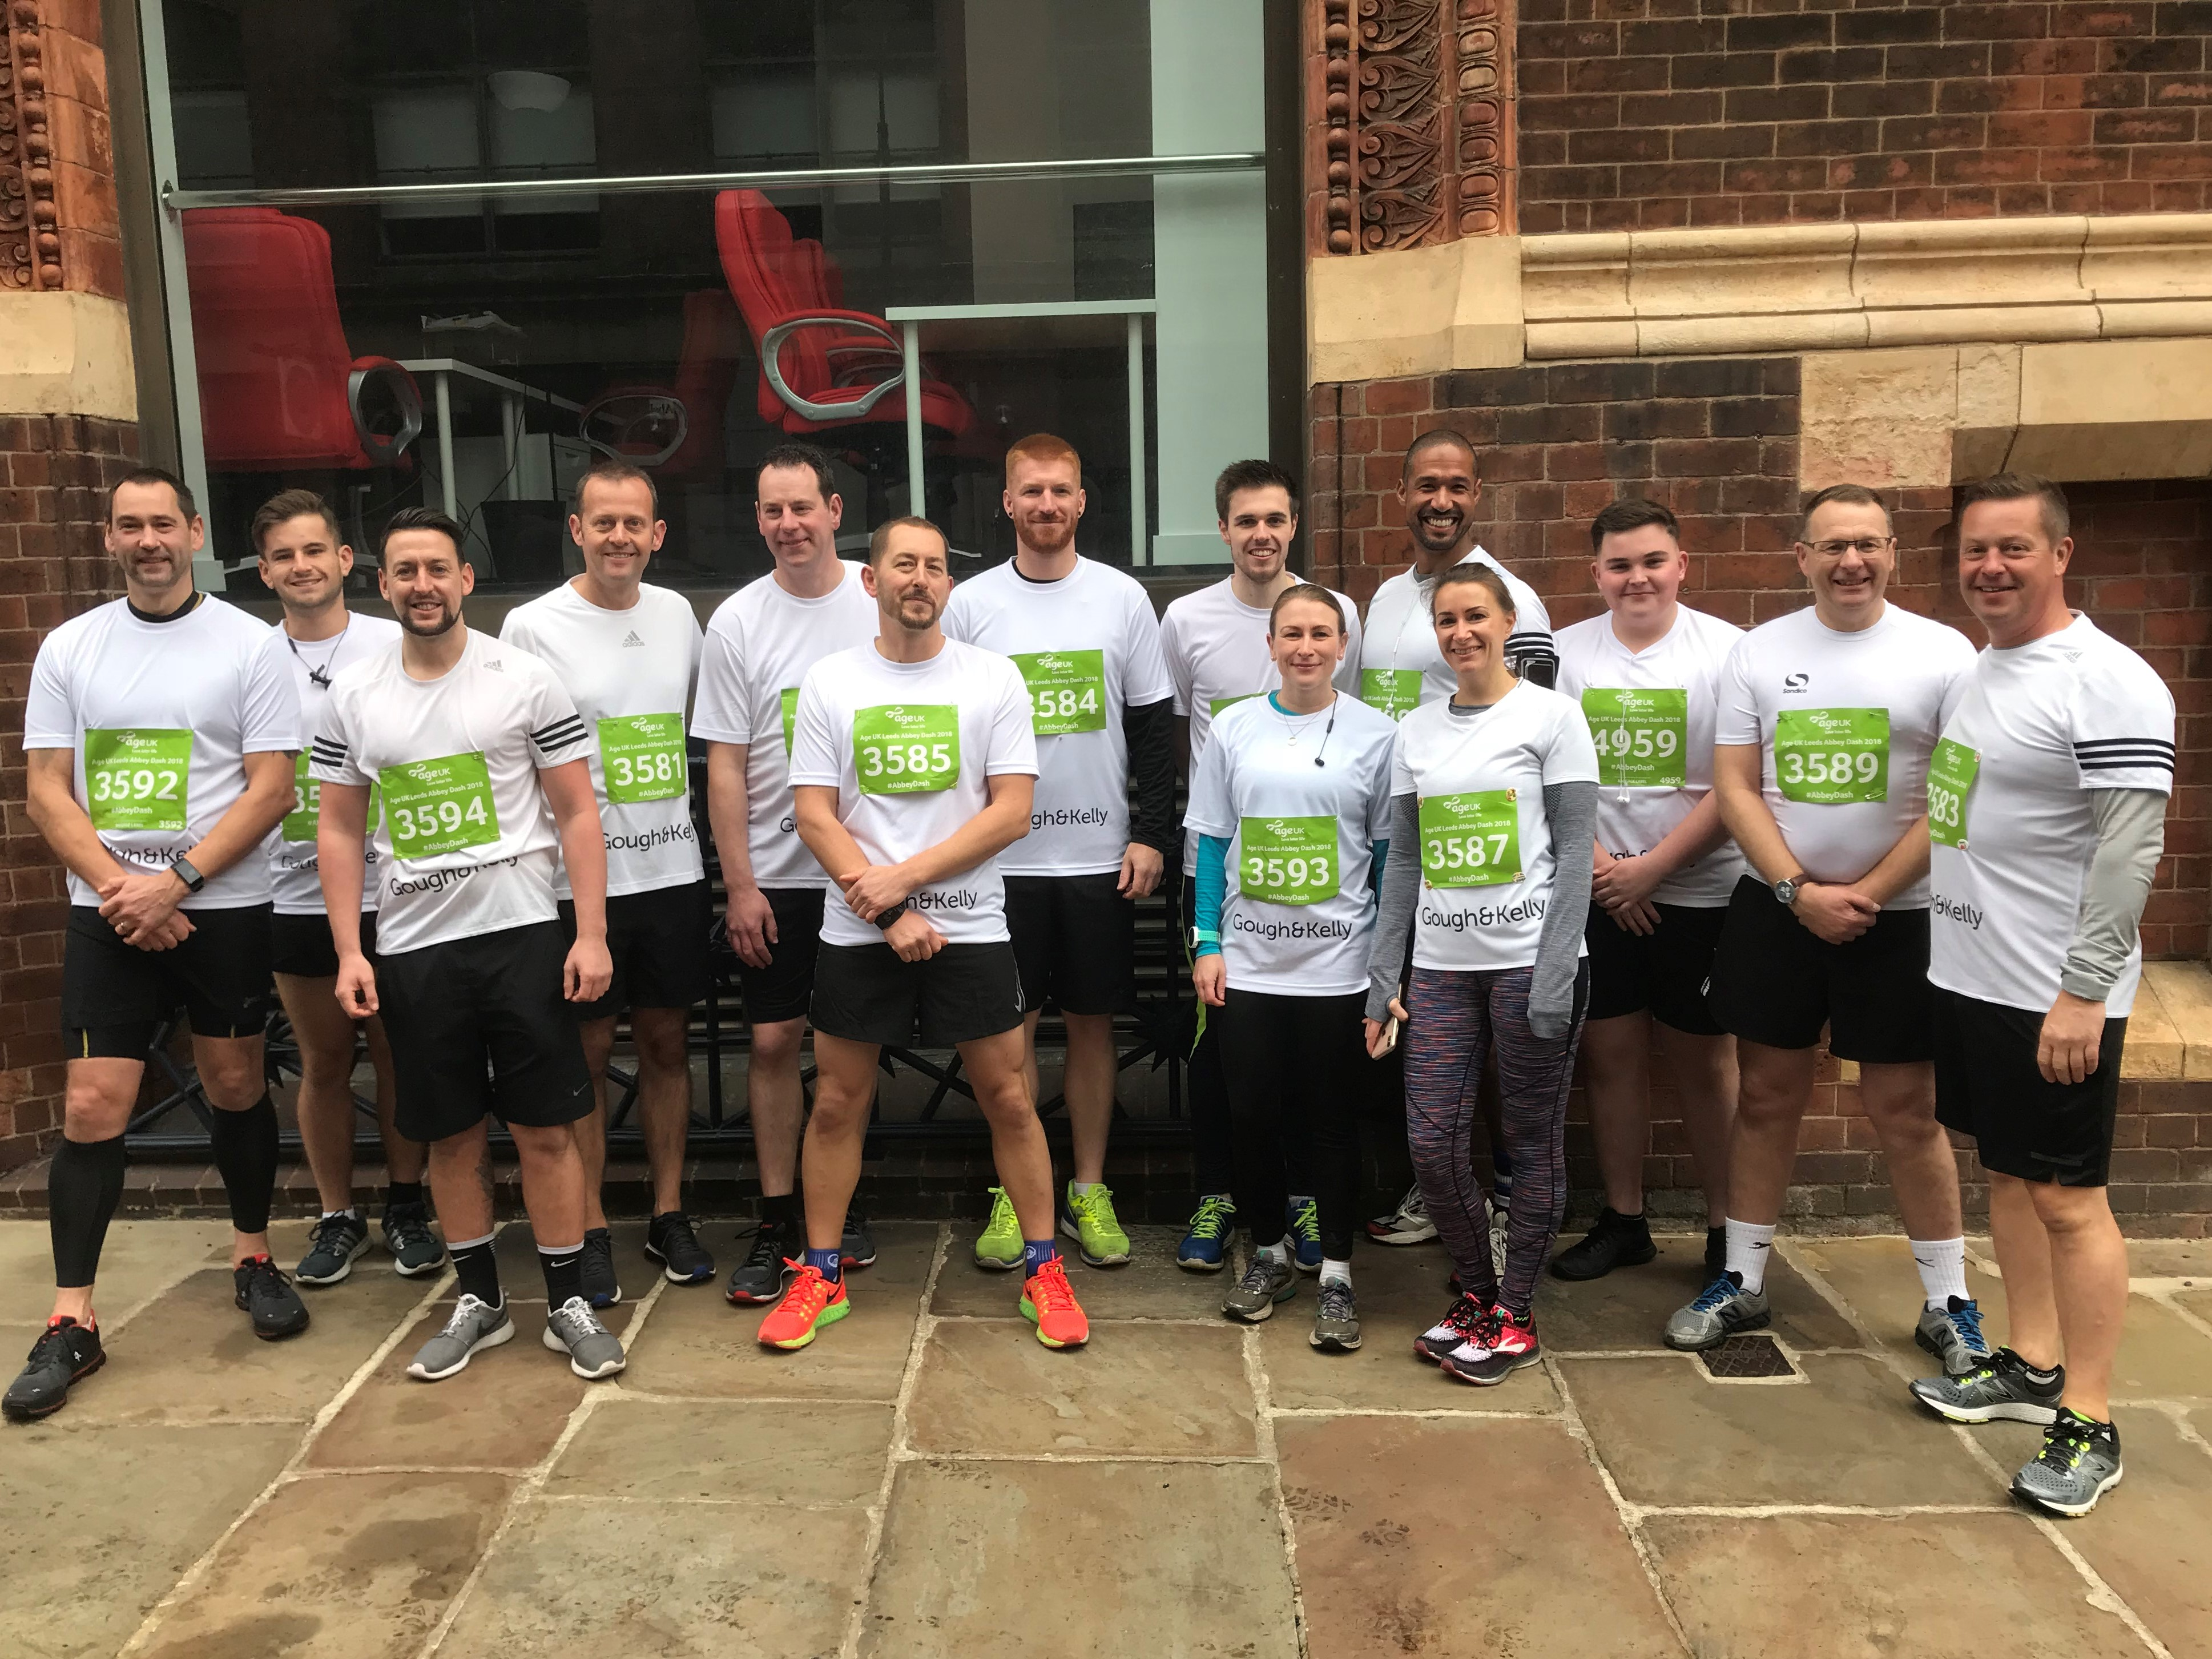 Dash to raise funds for Cancer Research UK